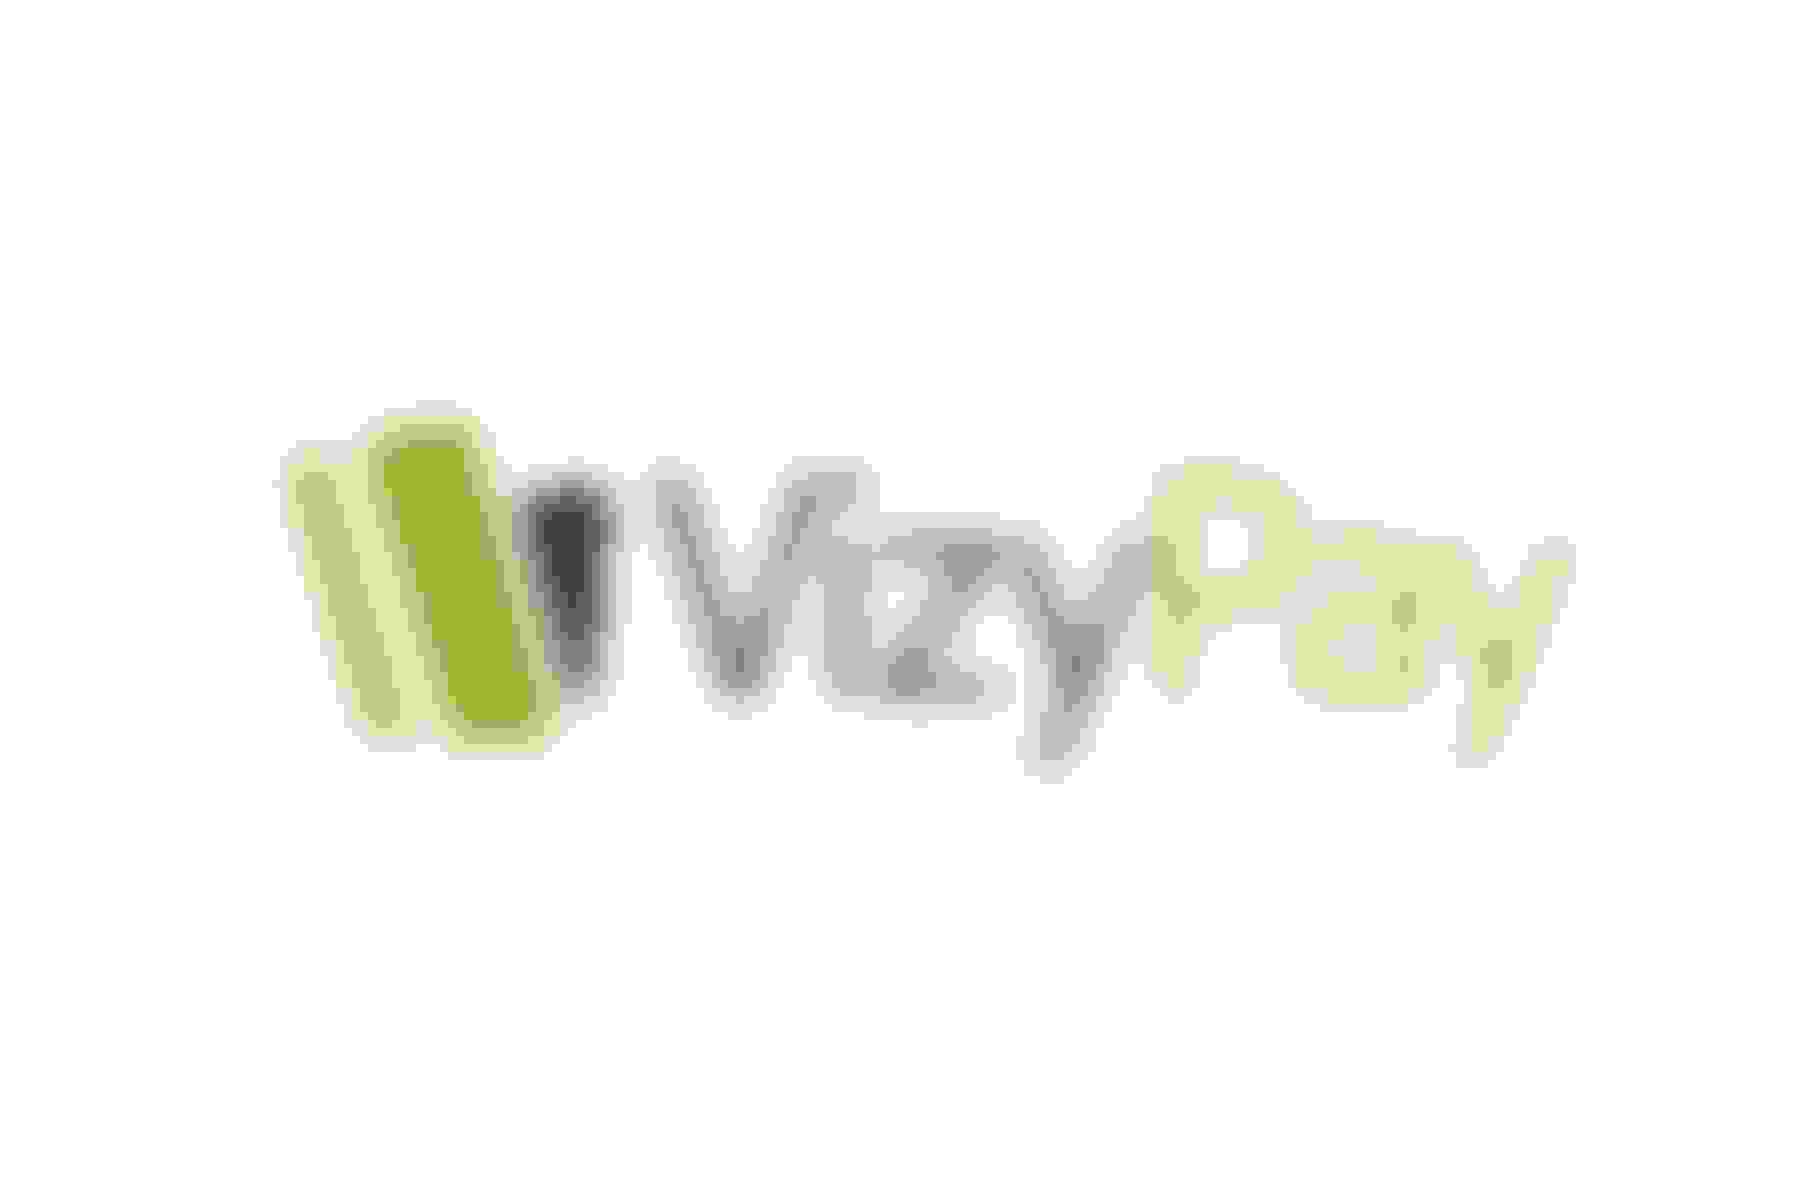 VizyPay offers simplified credit card processing services